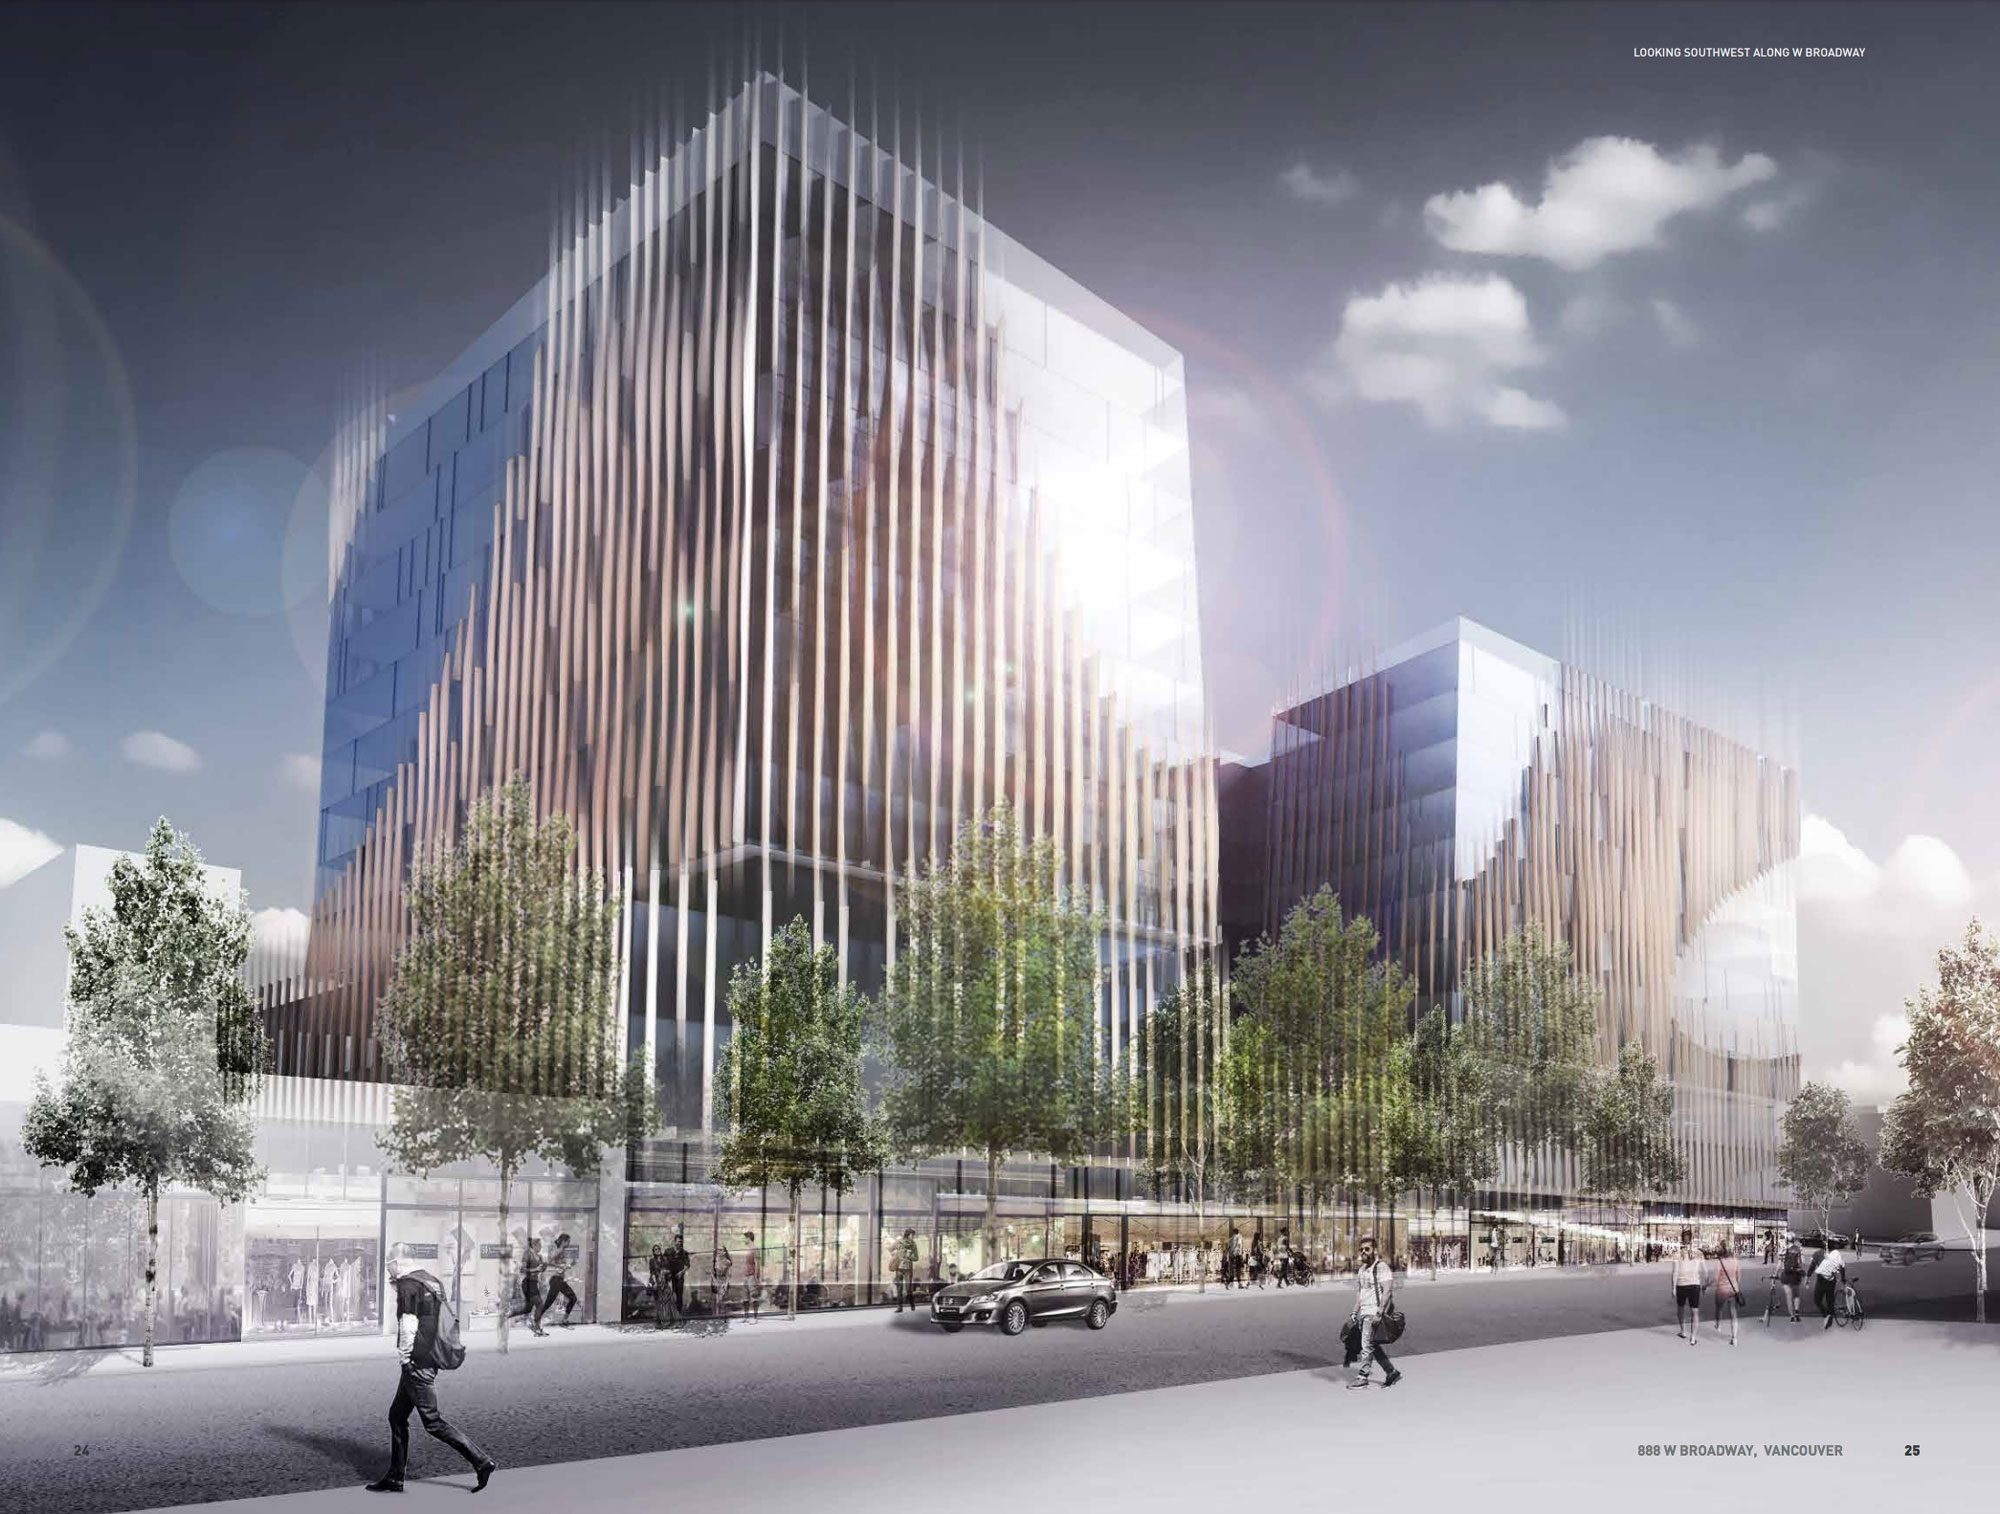 888 West Broadway to replace Park Inn